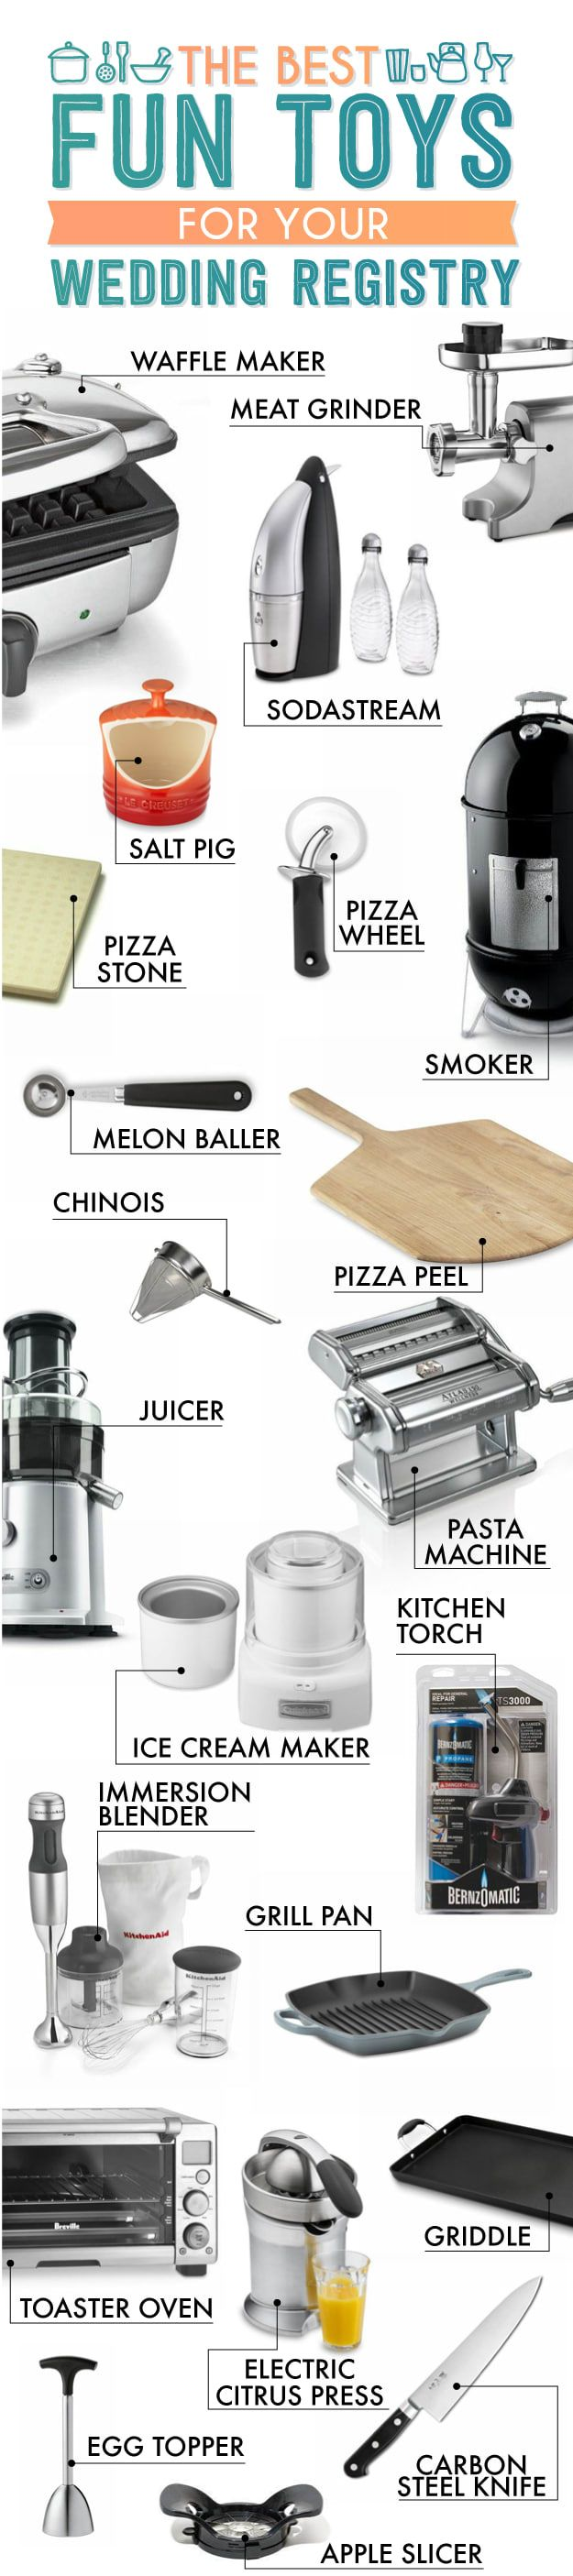 56 Best Wedding Registry Wishlist Images On Pinterest Kitchen